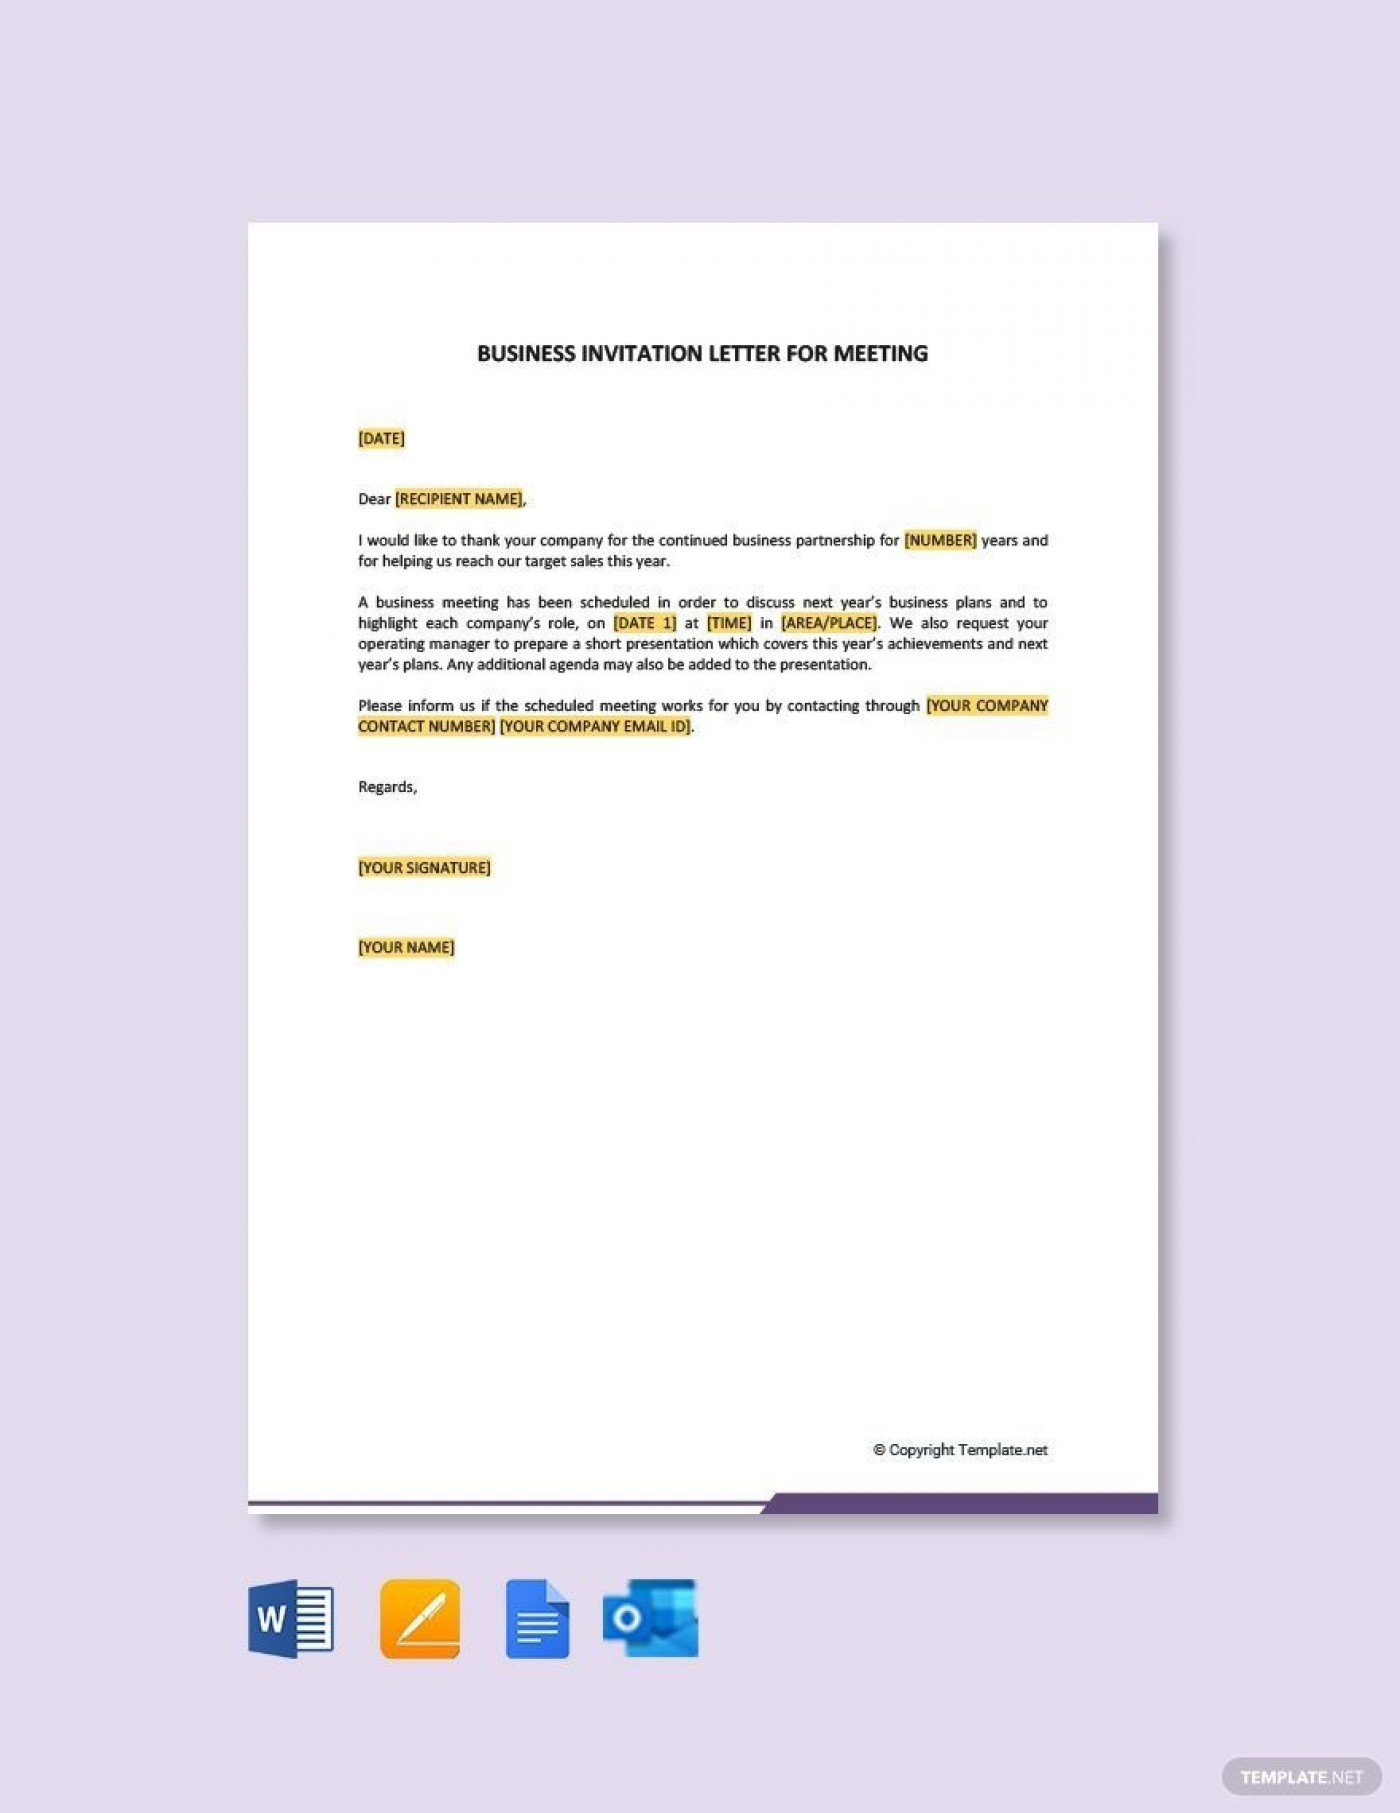 005 Exceptional Free Busines Invitation Template For Word High Def 1400